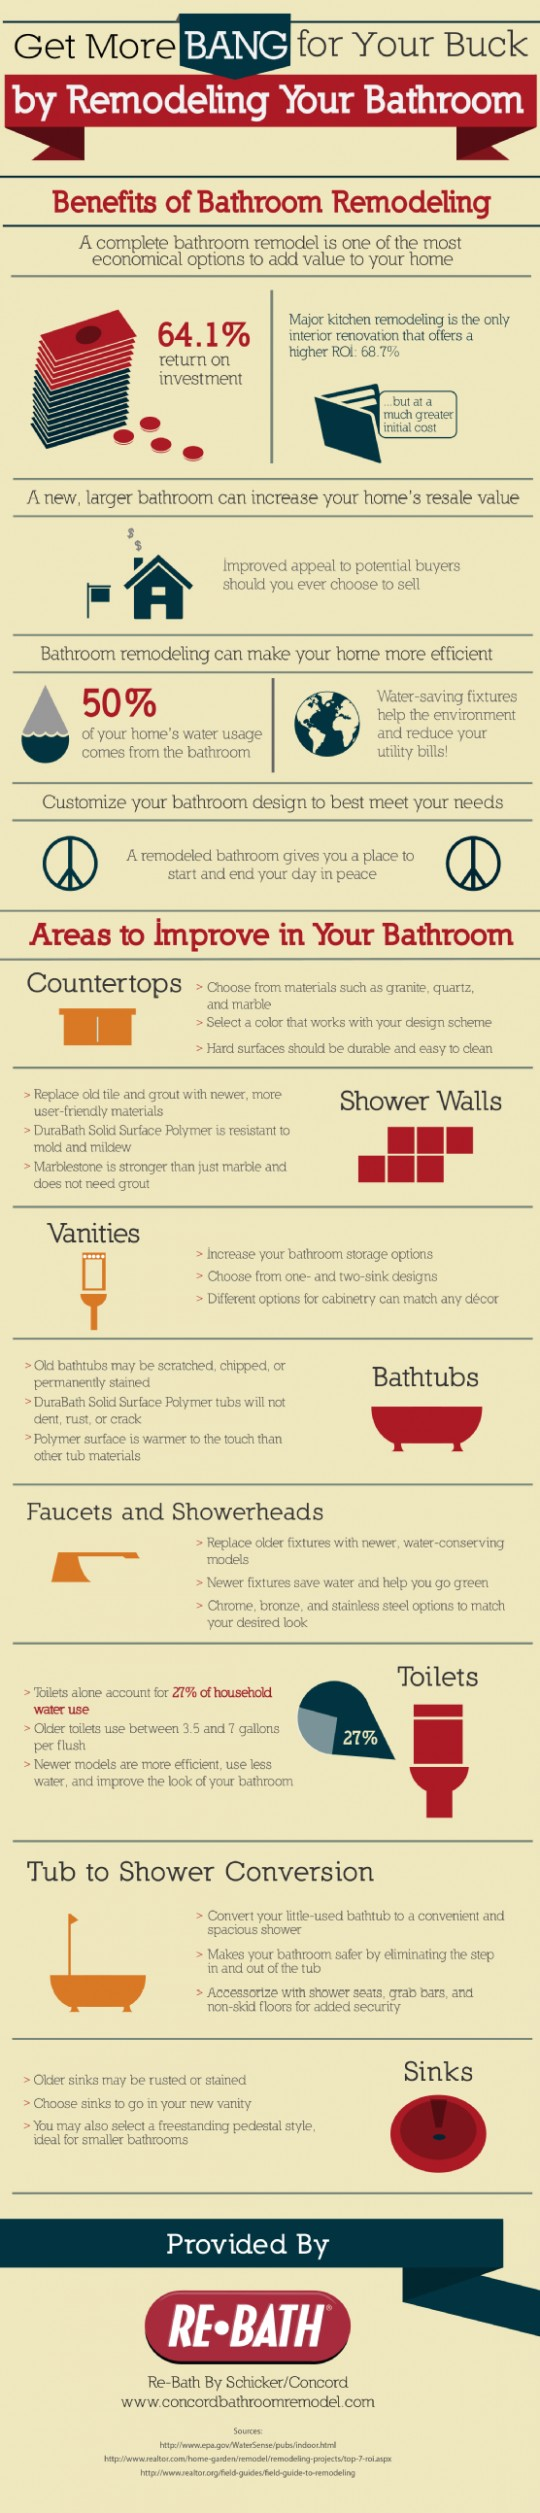 Get More Bang for Your Buck by Remodeling Your Bathroom